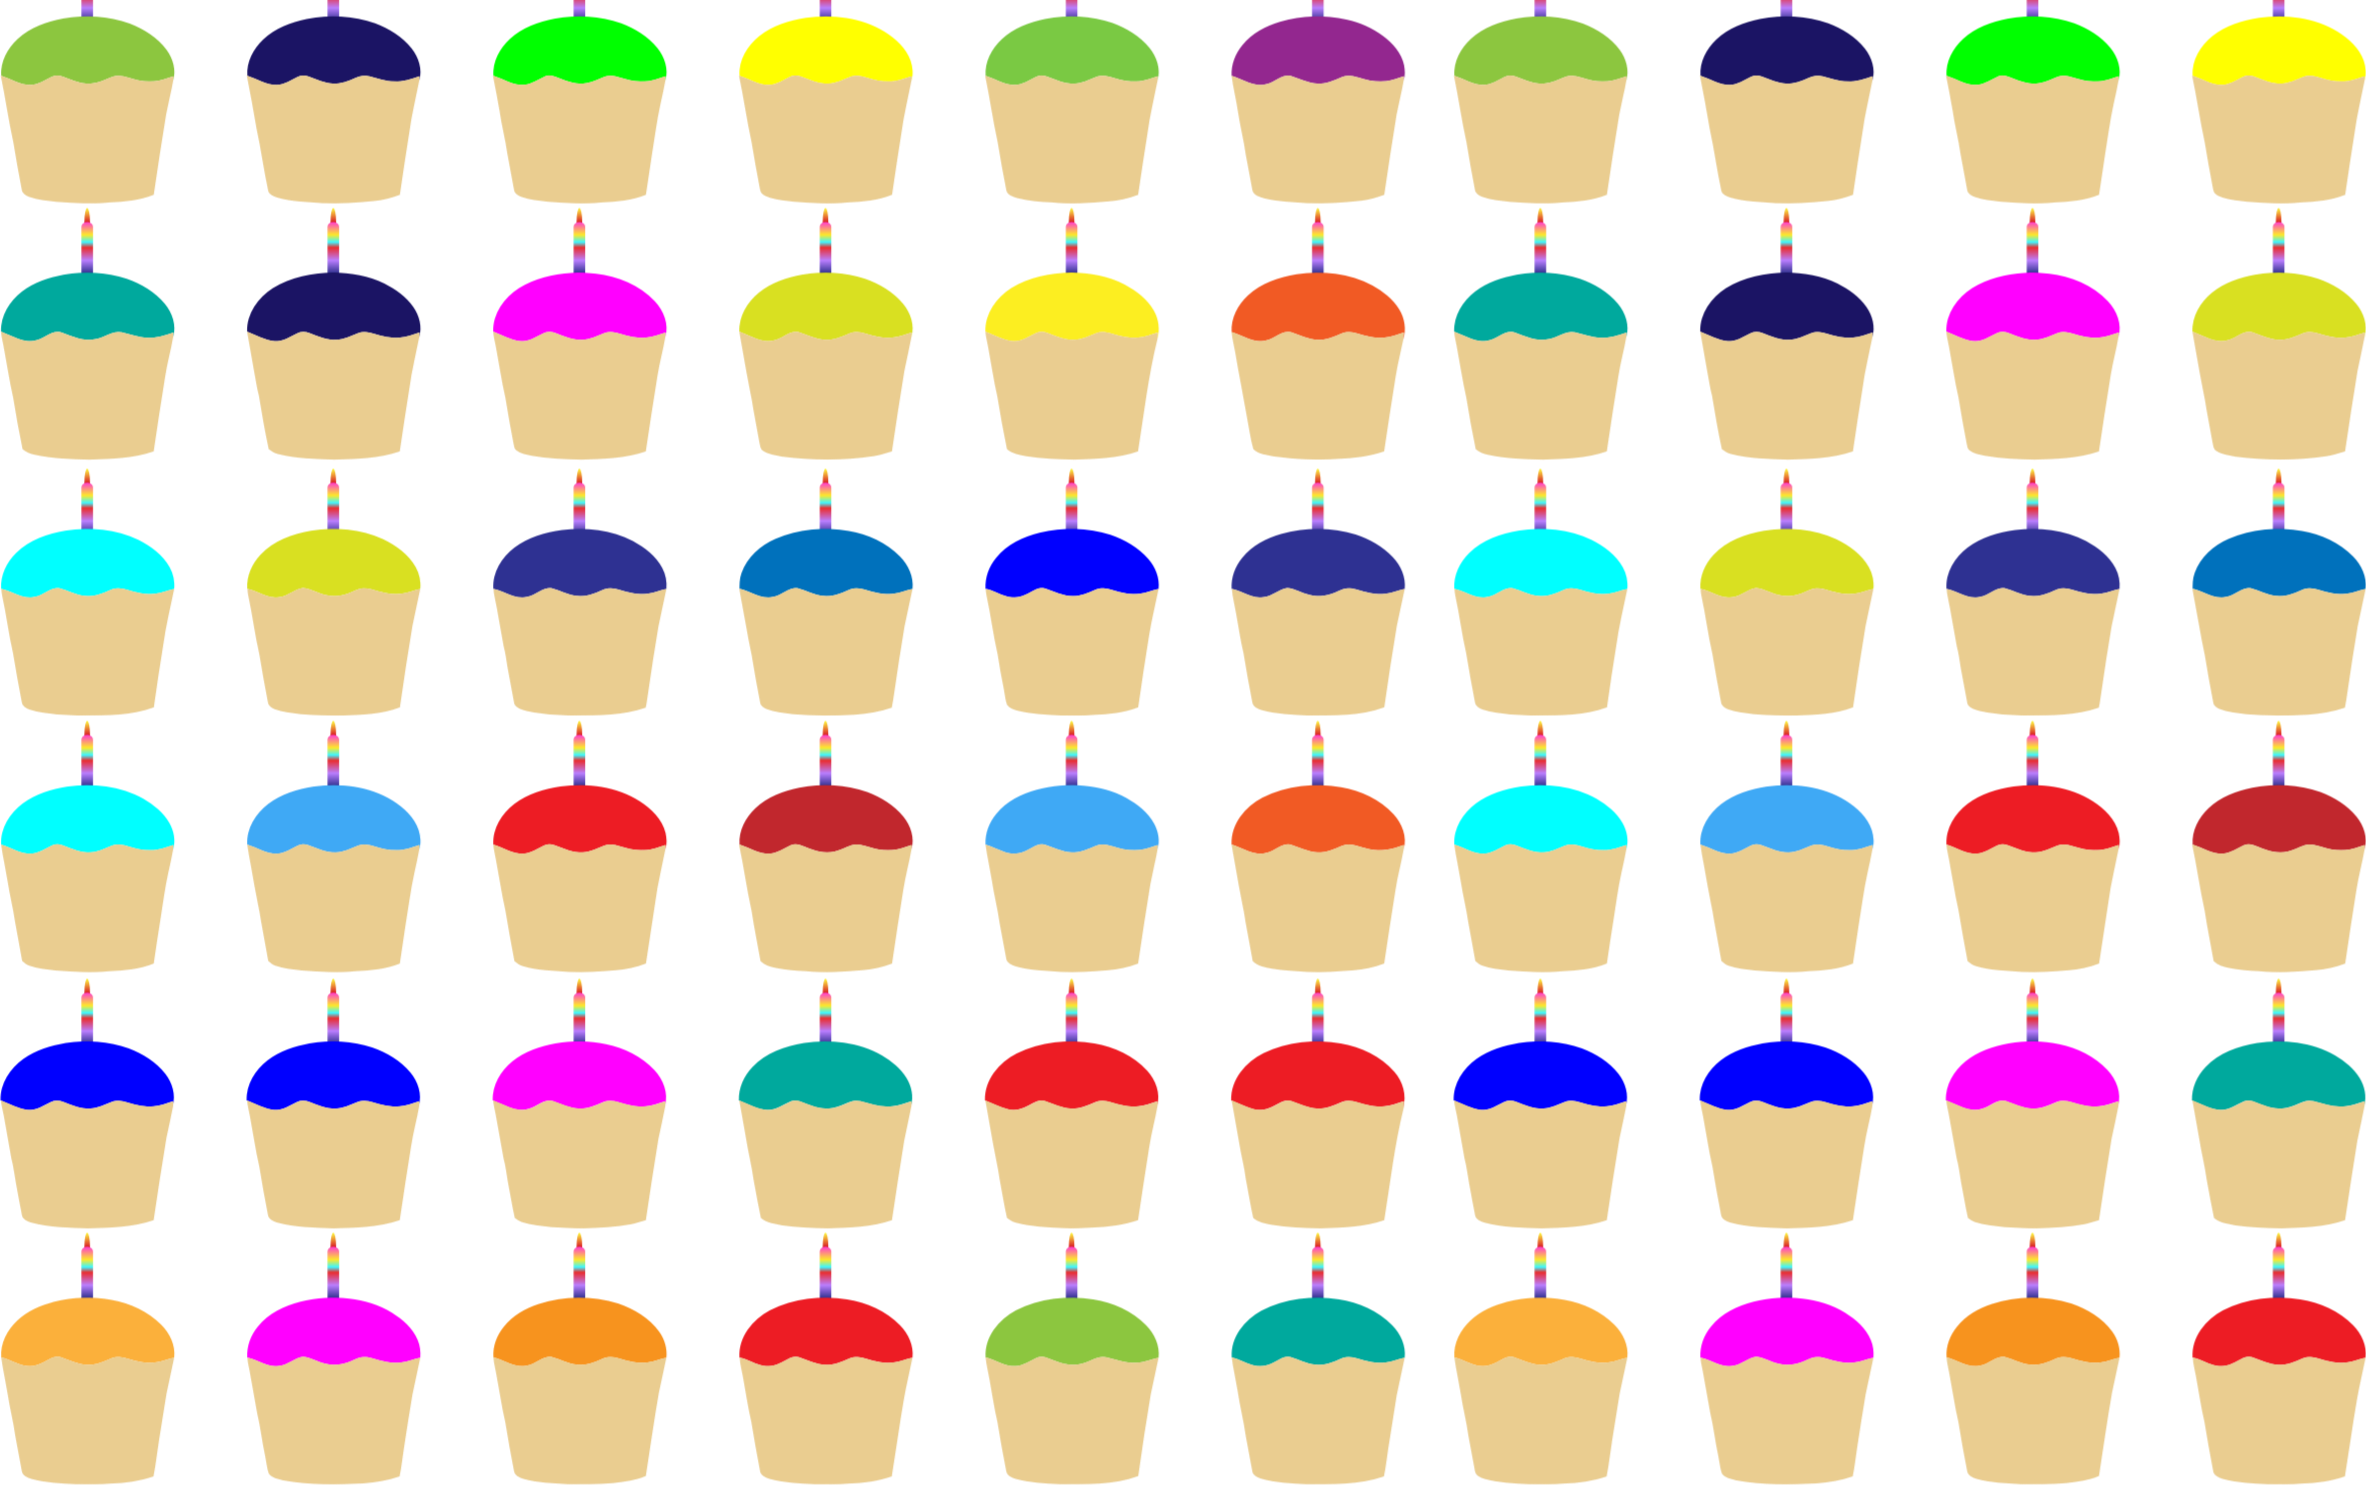 Seamless Colorful Cupcakes With Candles Pattern by GDJ